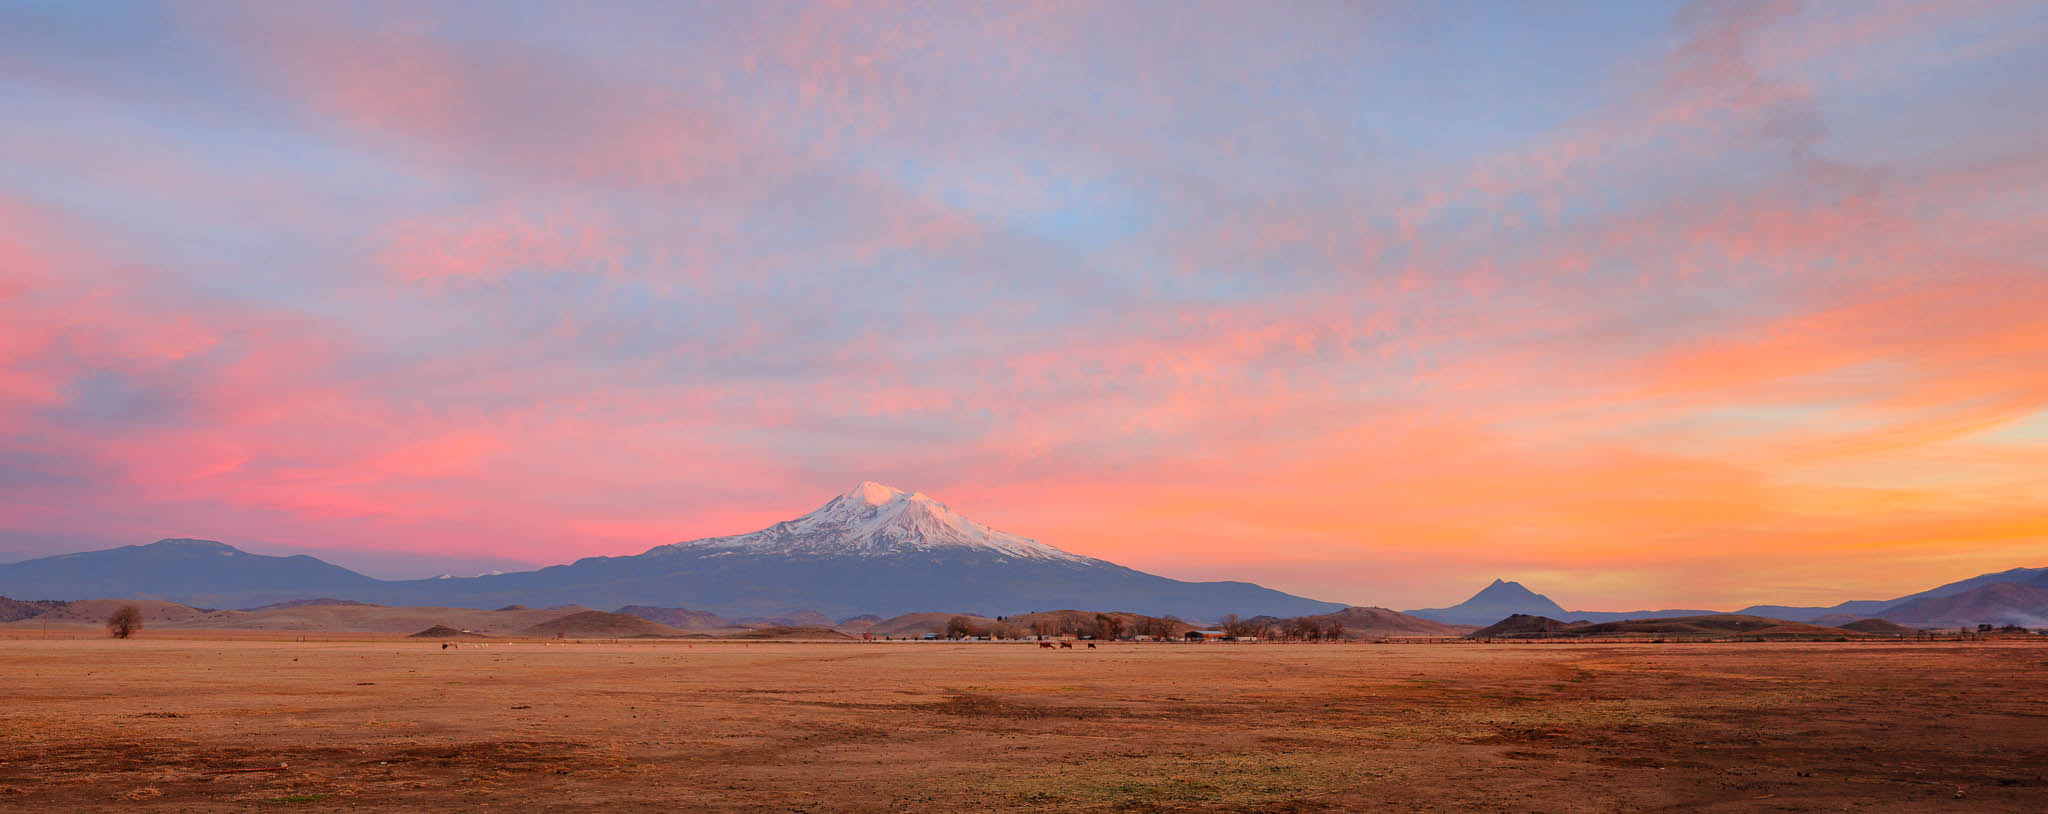 Photograph Grand Finale (Mount Shasta Sunset) by Eric Leslie on 500px